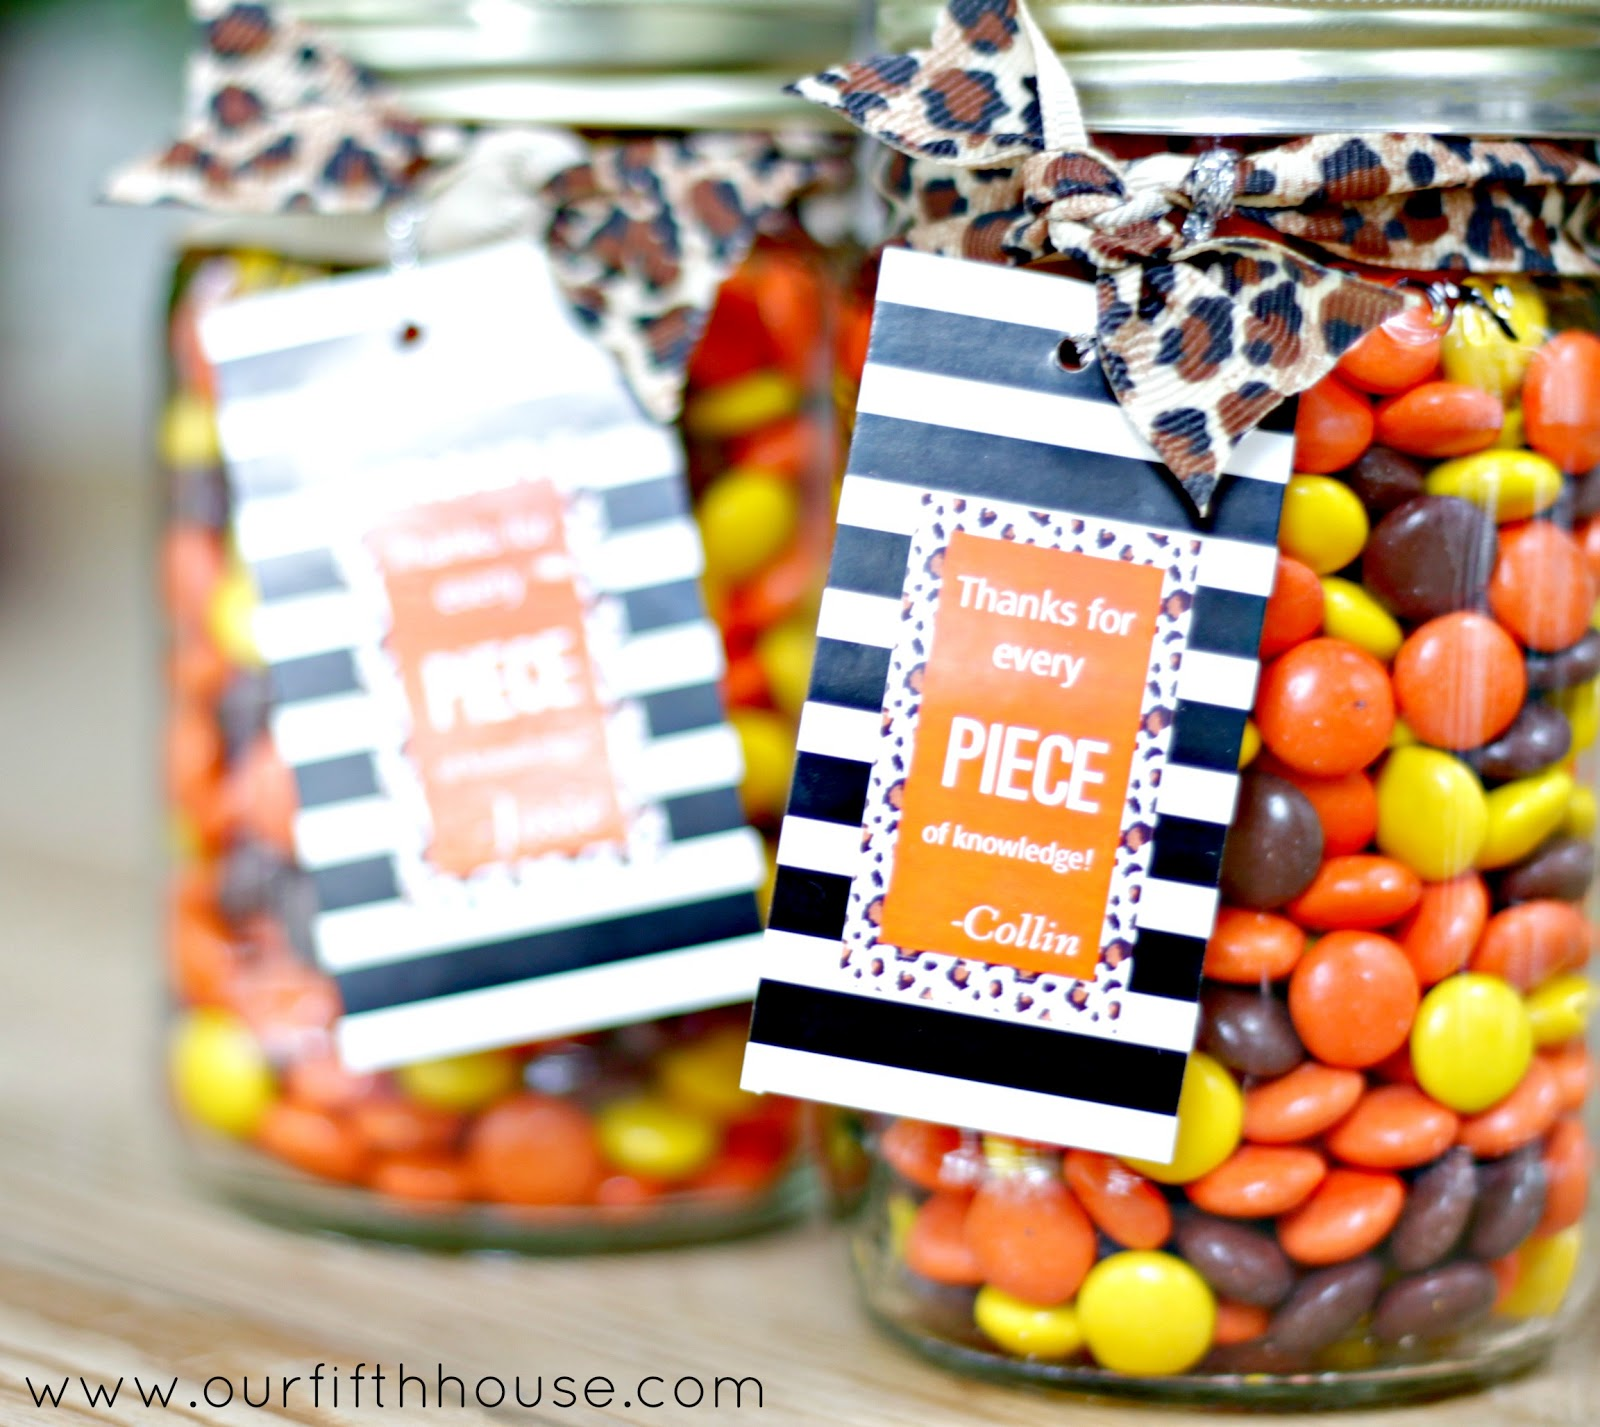 thank you to go with reeces pieces | just b.CAUSE